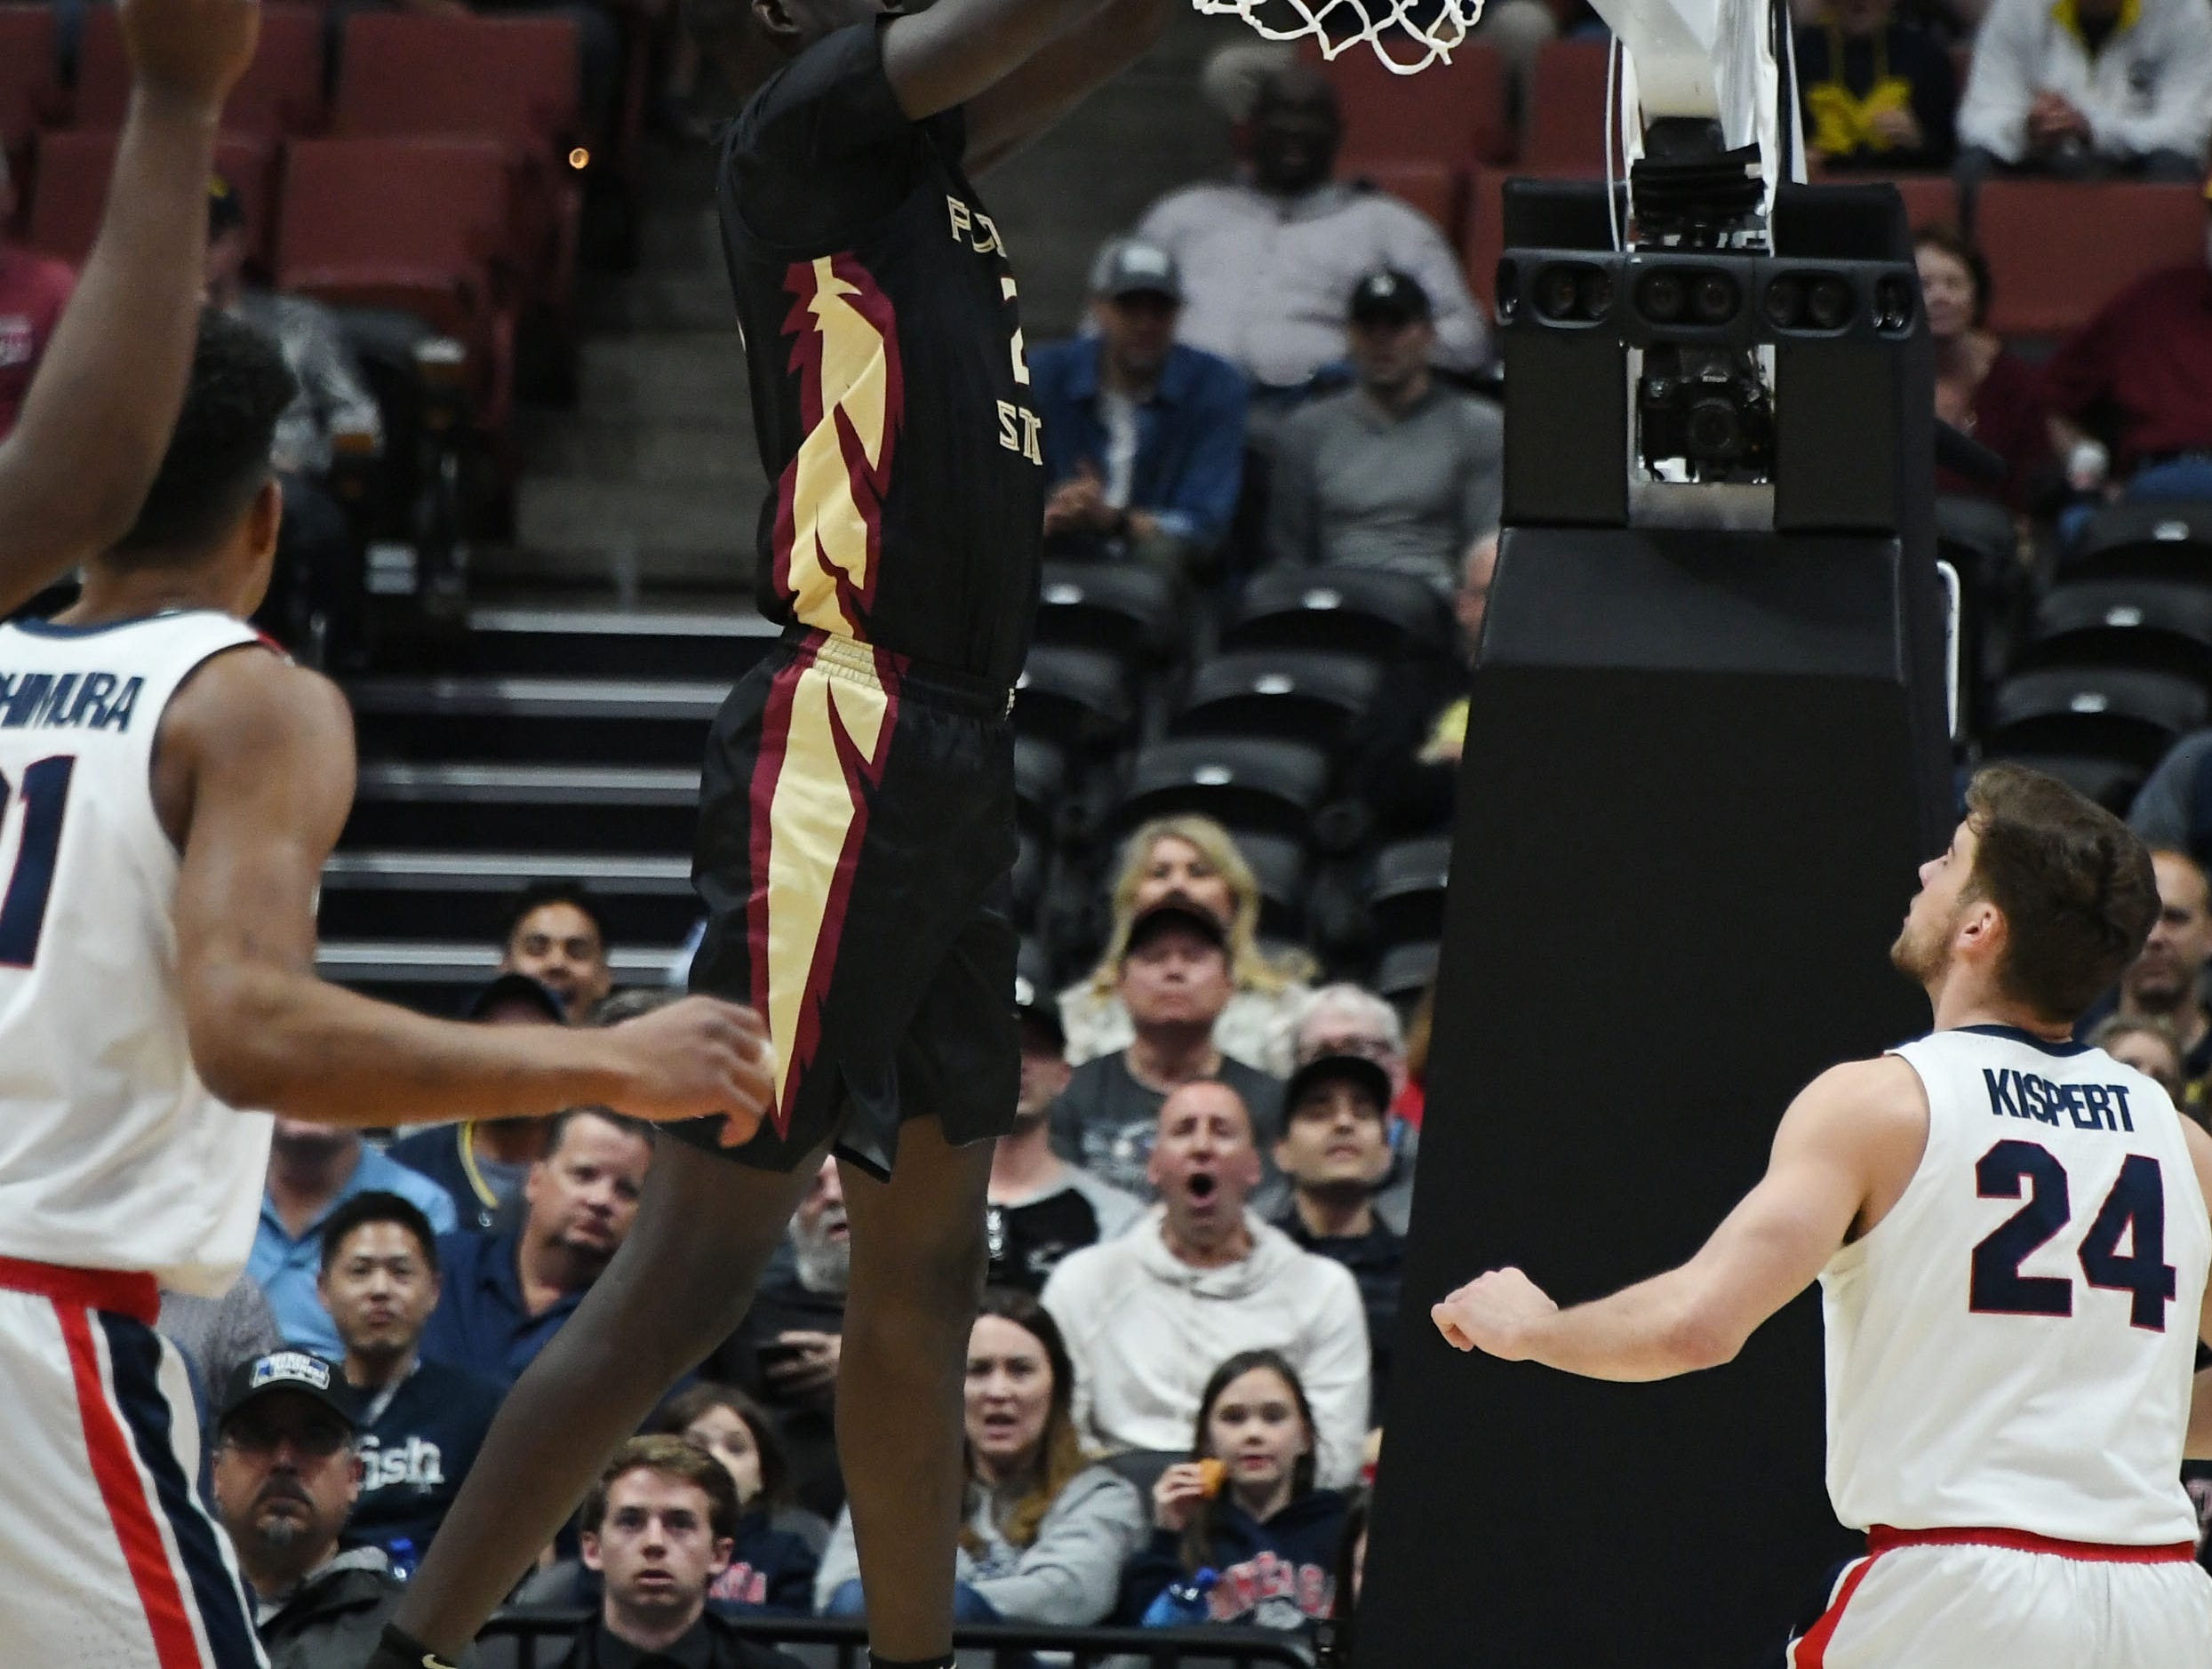 March 28, 2019; Anaheim, CA, USA; Florida State Seminoles center Christ Koumadje (21) scores a basket against Gonzaga Bulldogs during the first half in the semifinals of the west regional of the 2019 NCAA Tournament at Honda Center. Mandatory Credit: Richard Mackson-USA TODAY Sports